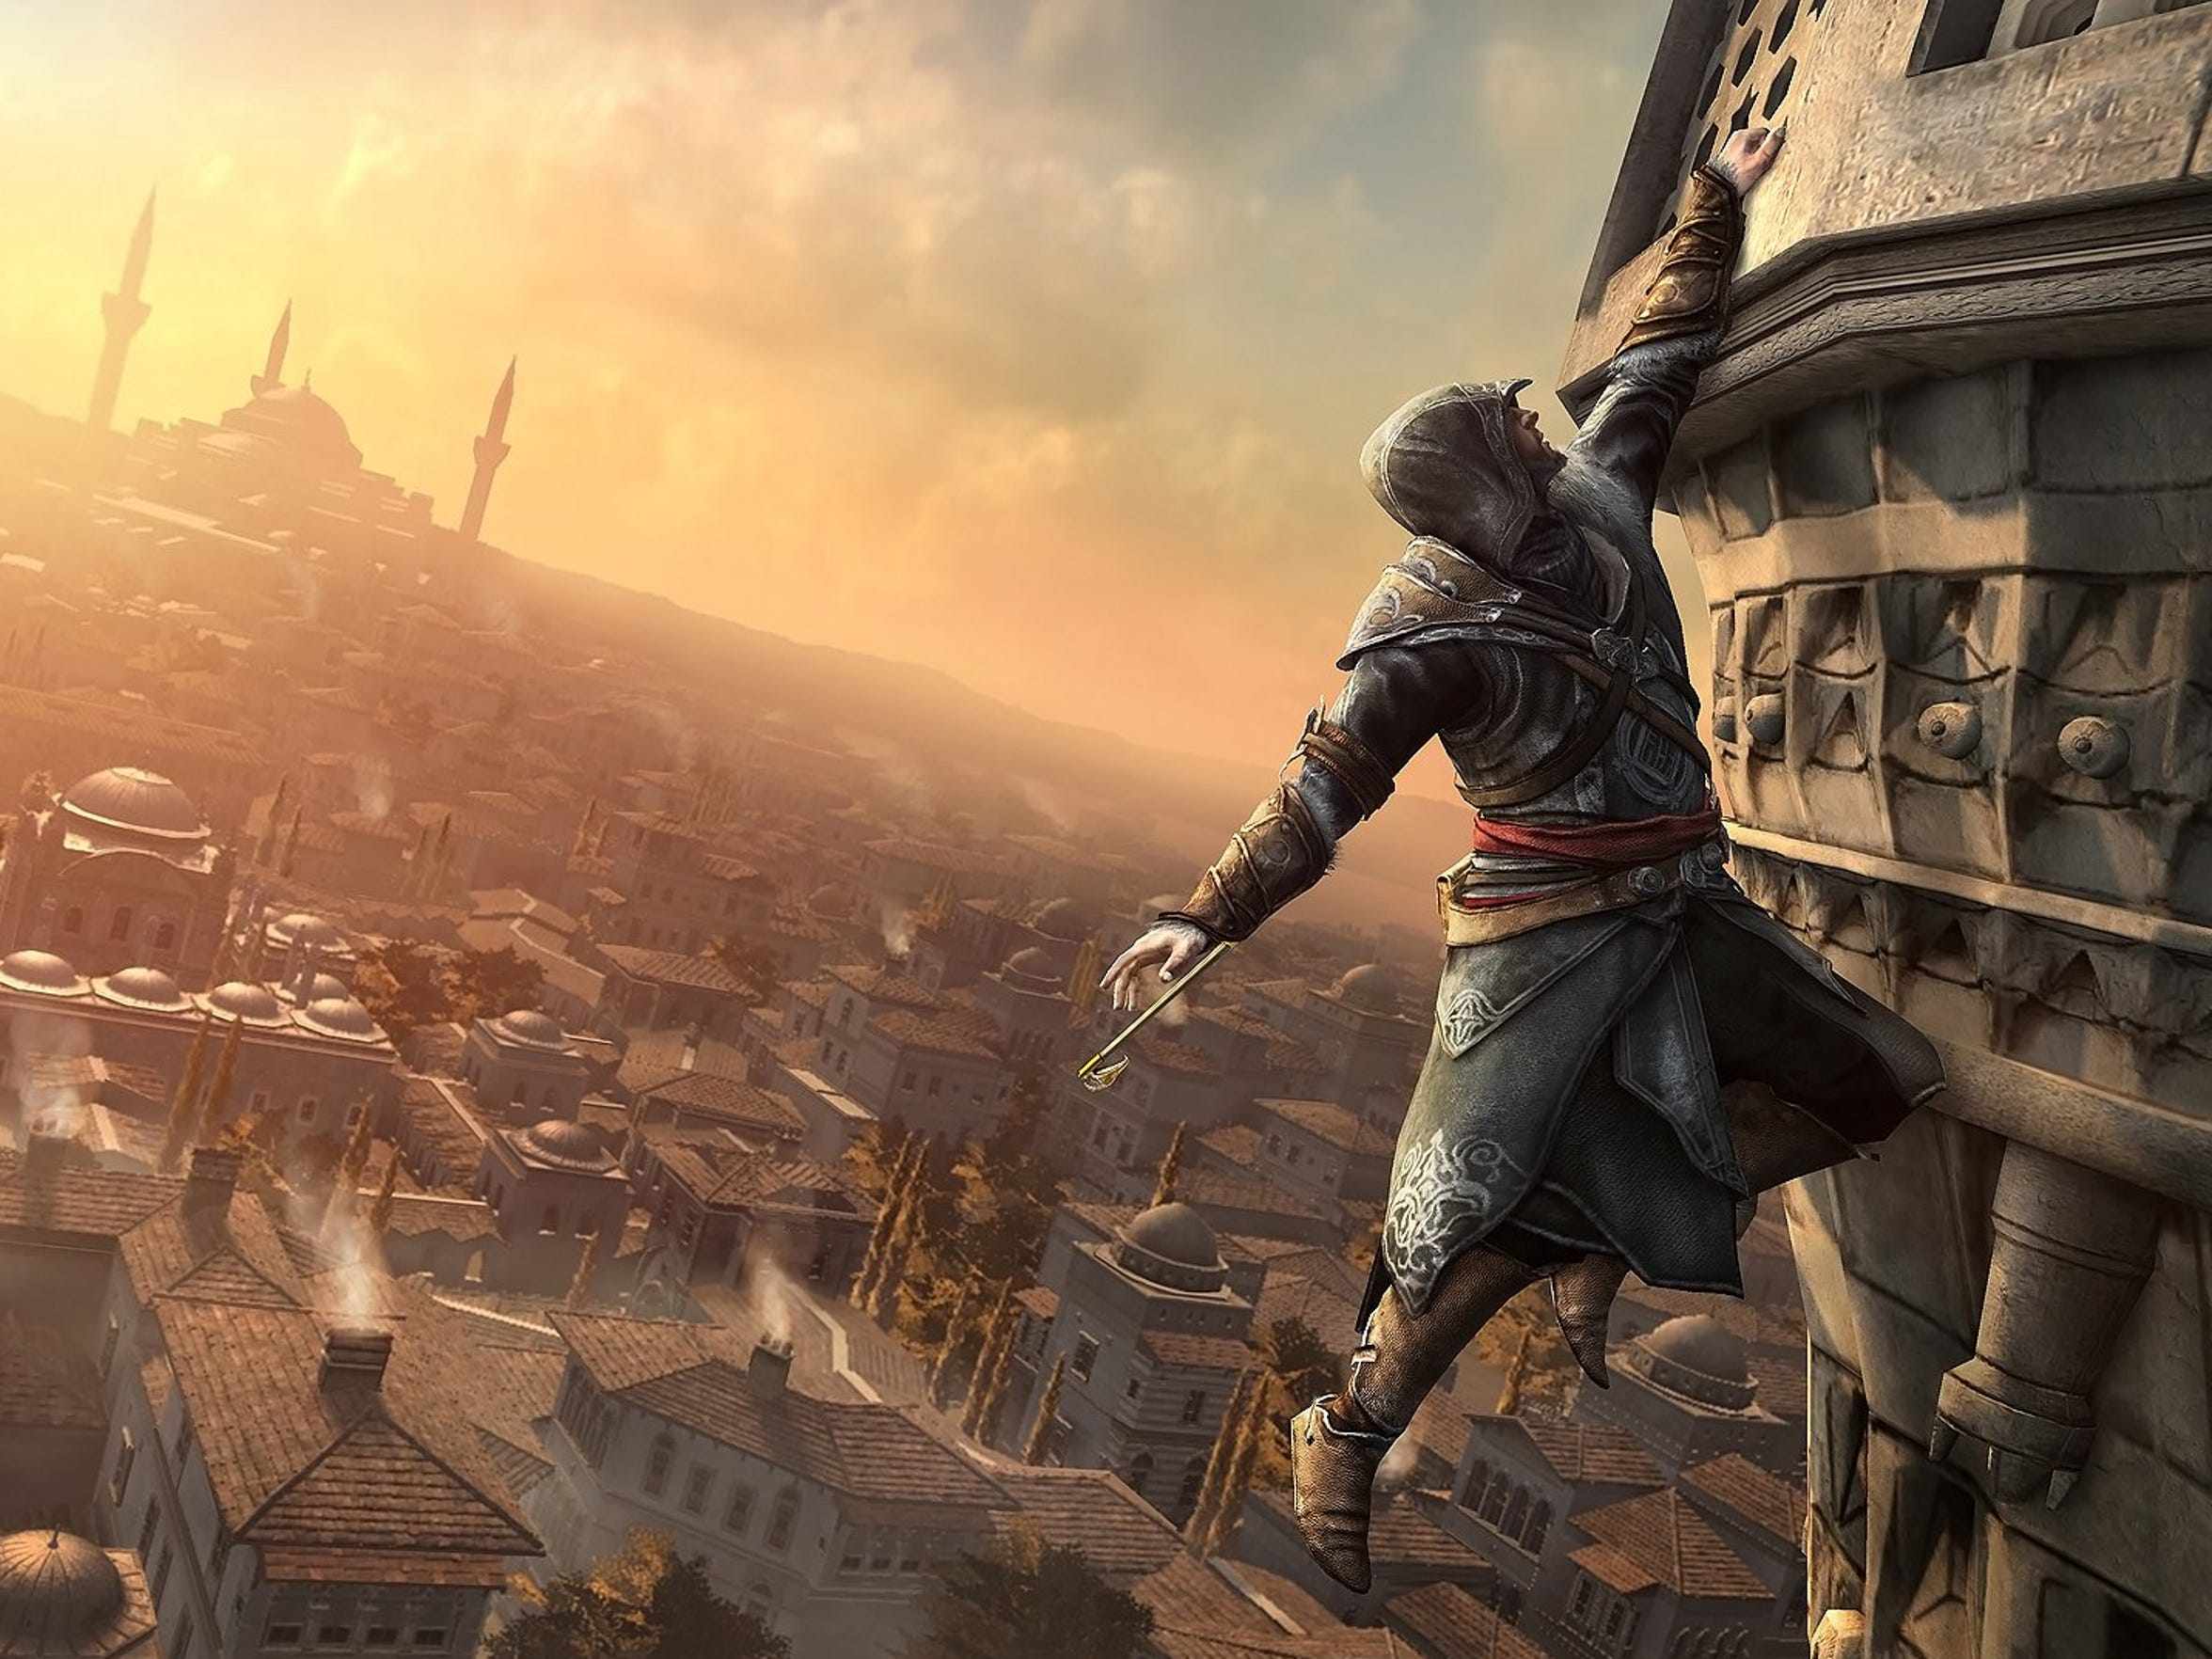 Hang around classic locales once again in Assassin's